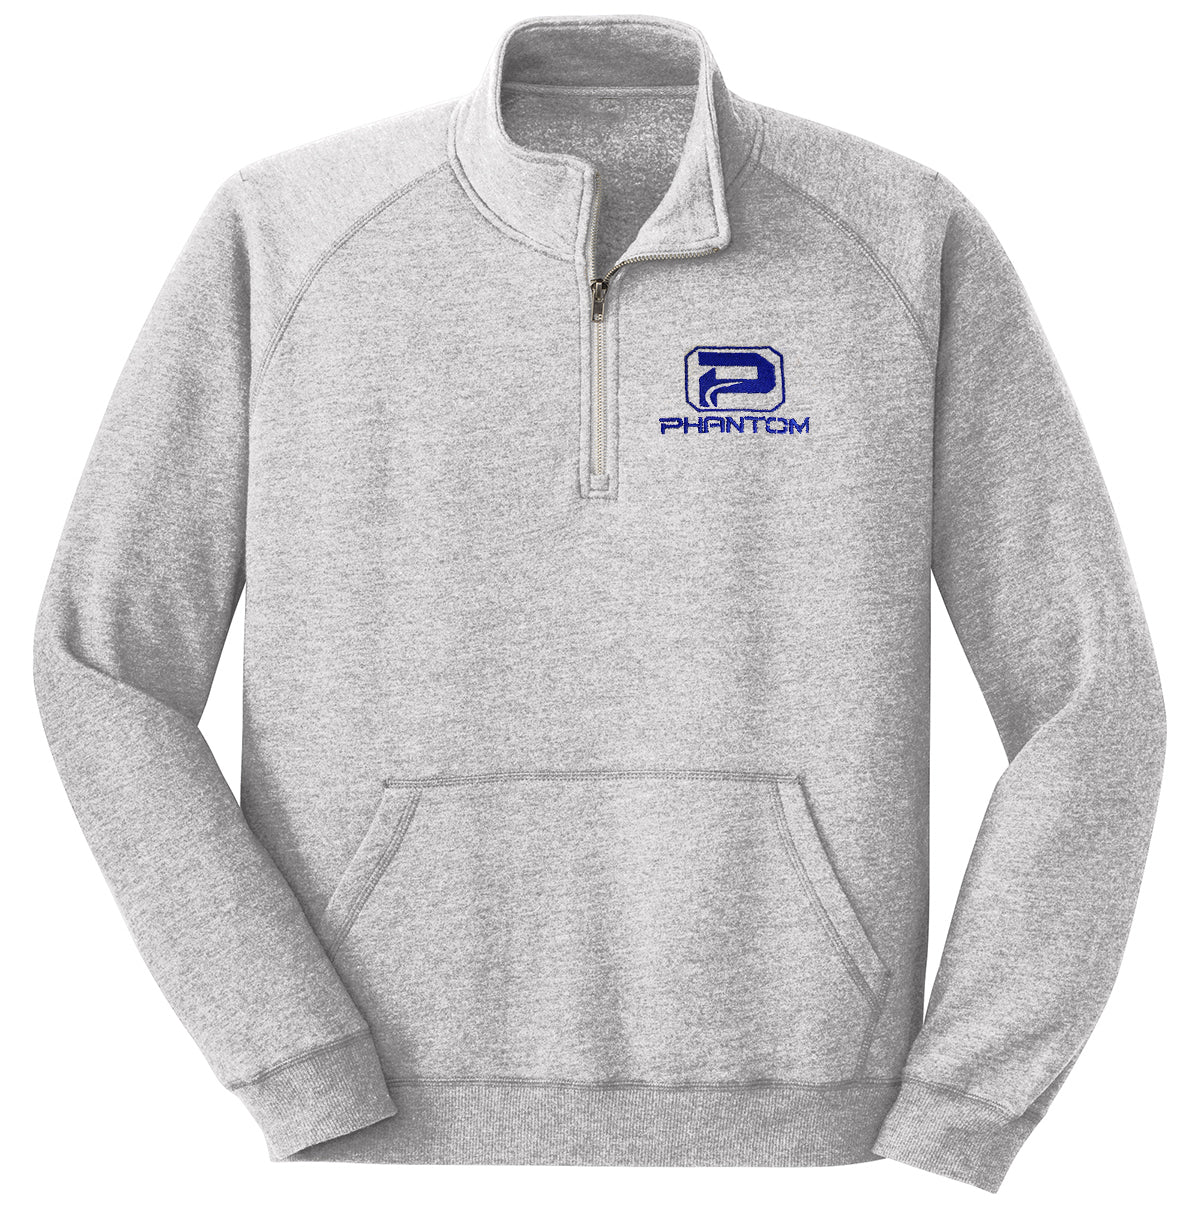 Phantom Outdoors 1/4 Zip Fleece